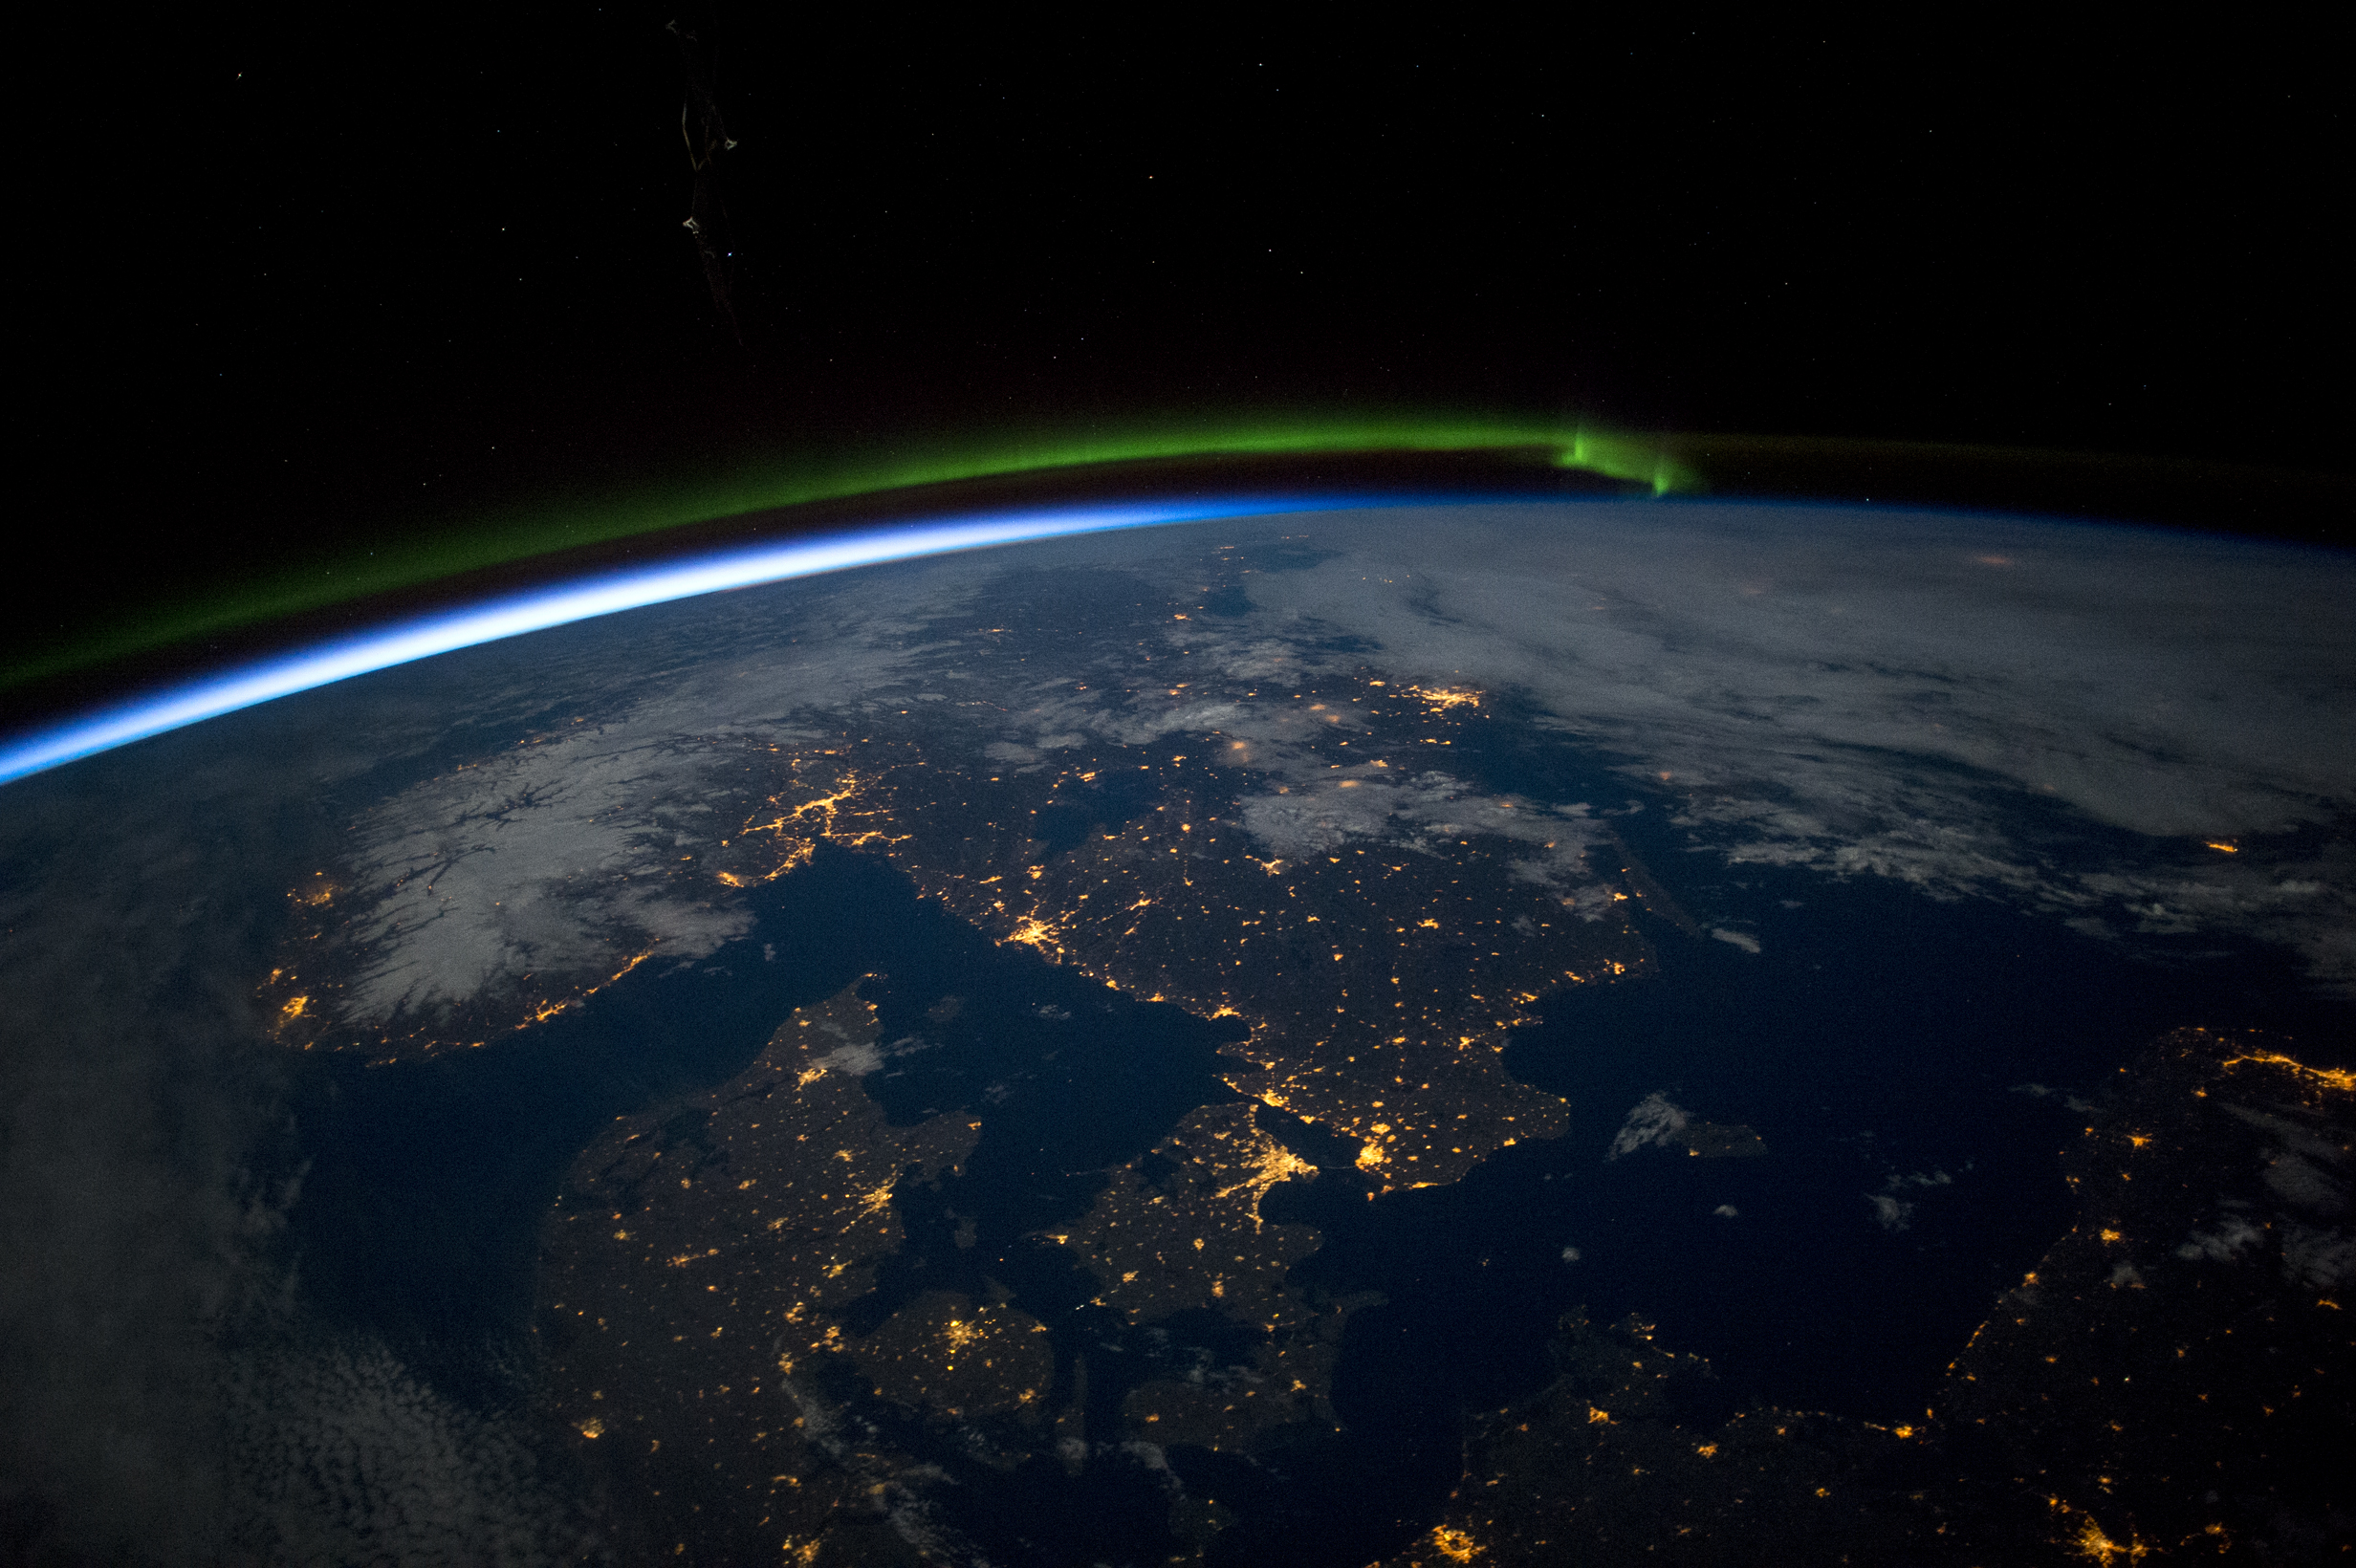 Top 15 Space Station Earth Images of 2015 | NASA